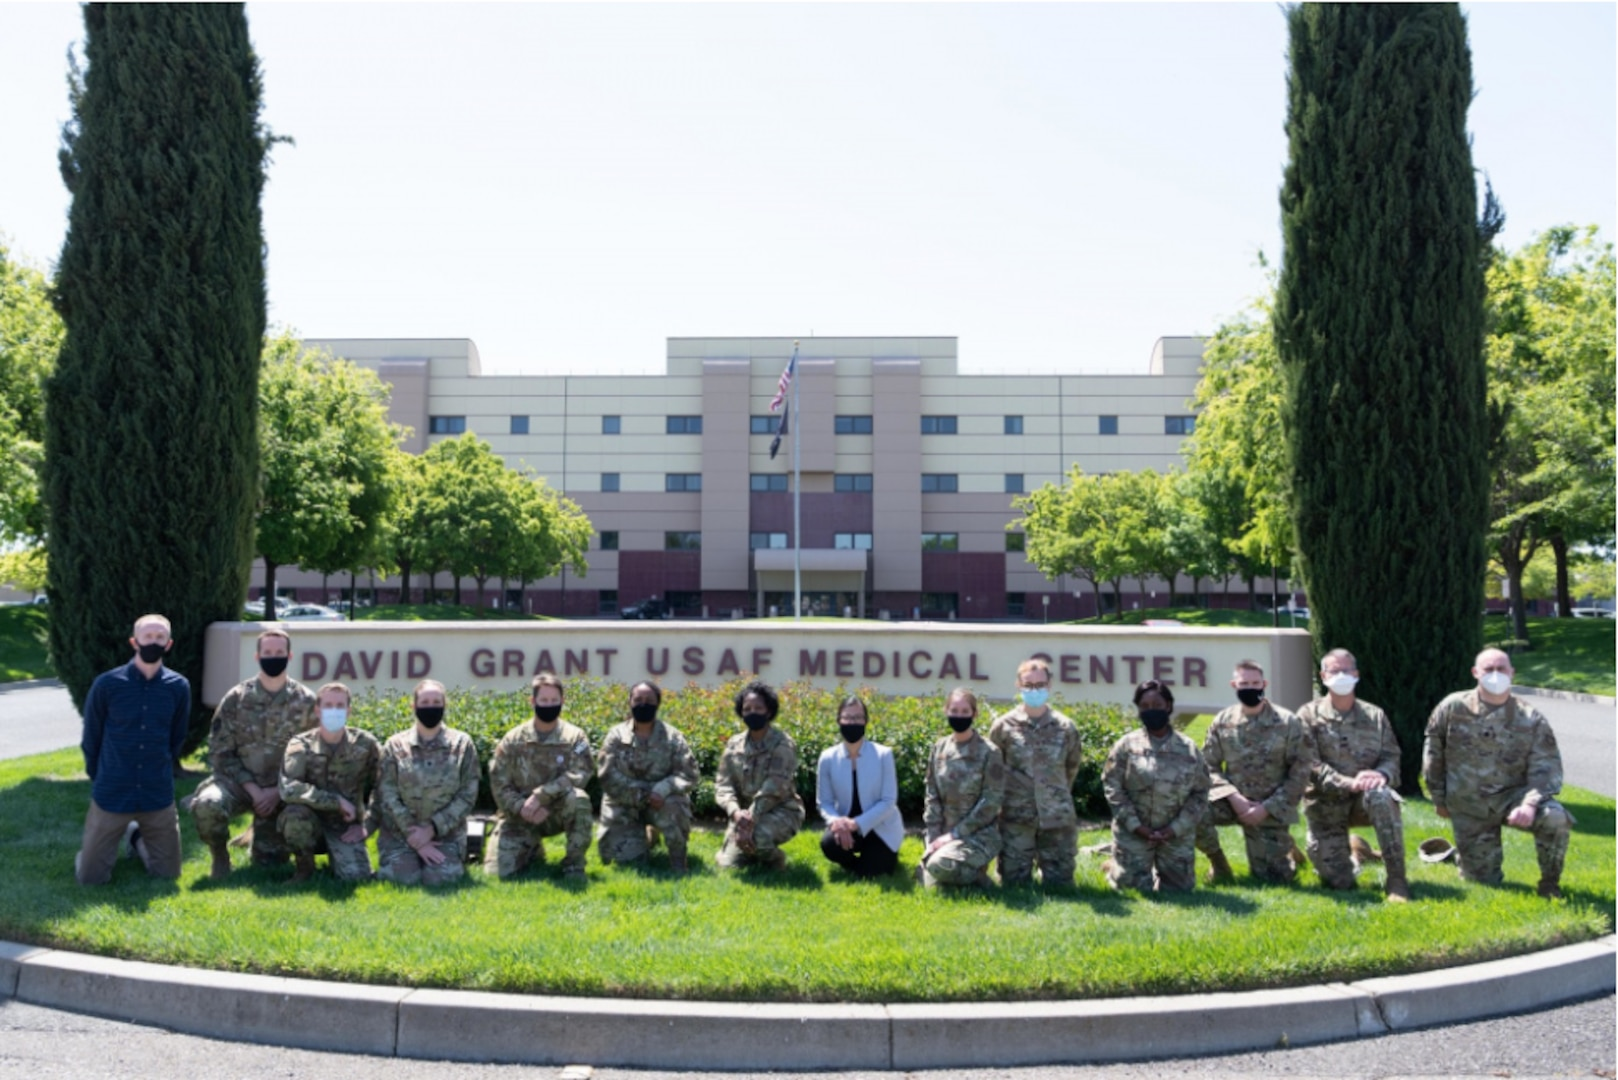 Travis Air Force Base Lifestyle and Performance Medical Clinic team pose for a group photo at David Grant USAF Medical Center at Travis AFB, California, April 15, 2021.